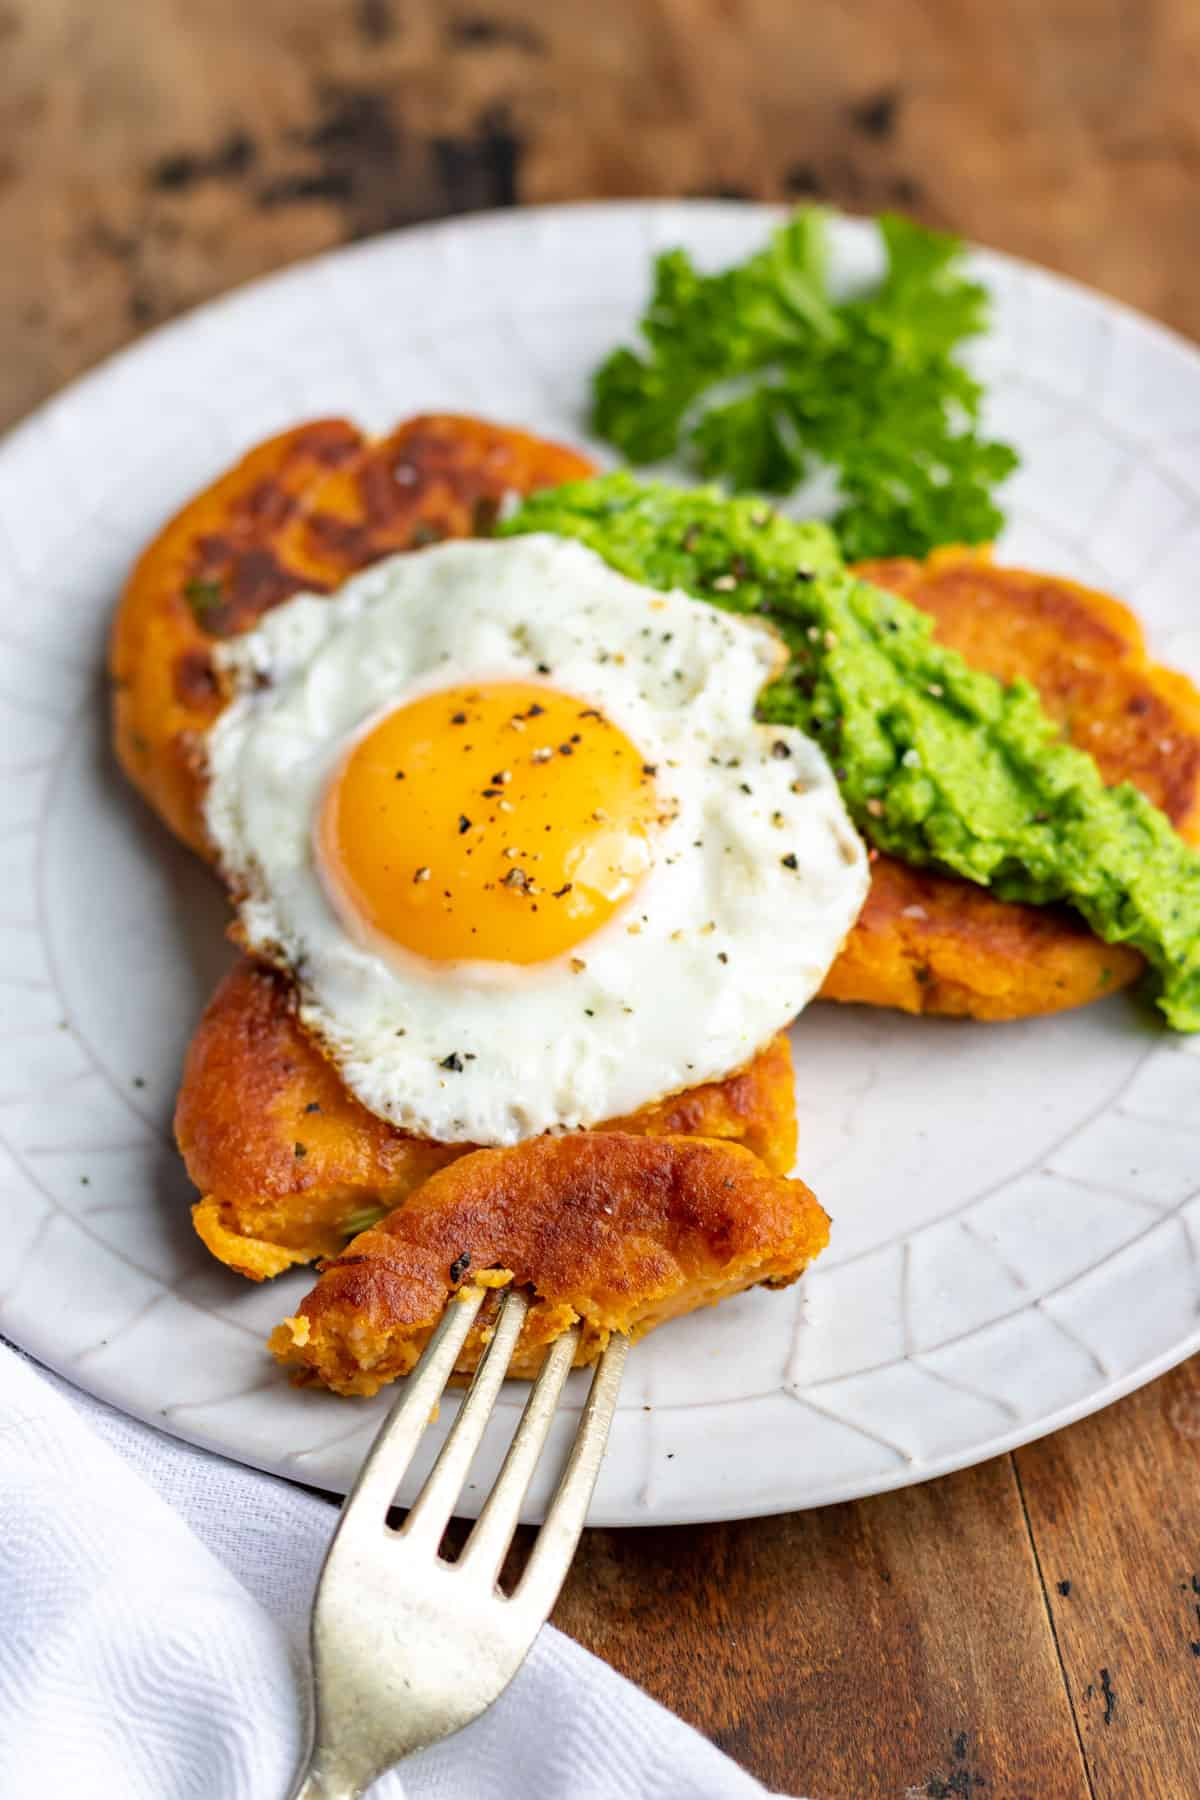 Plate of patties topped with an egg and pea puree.